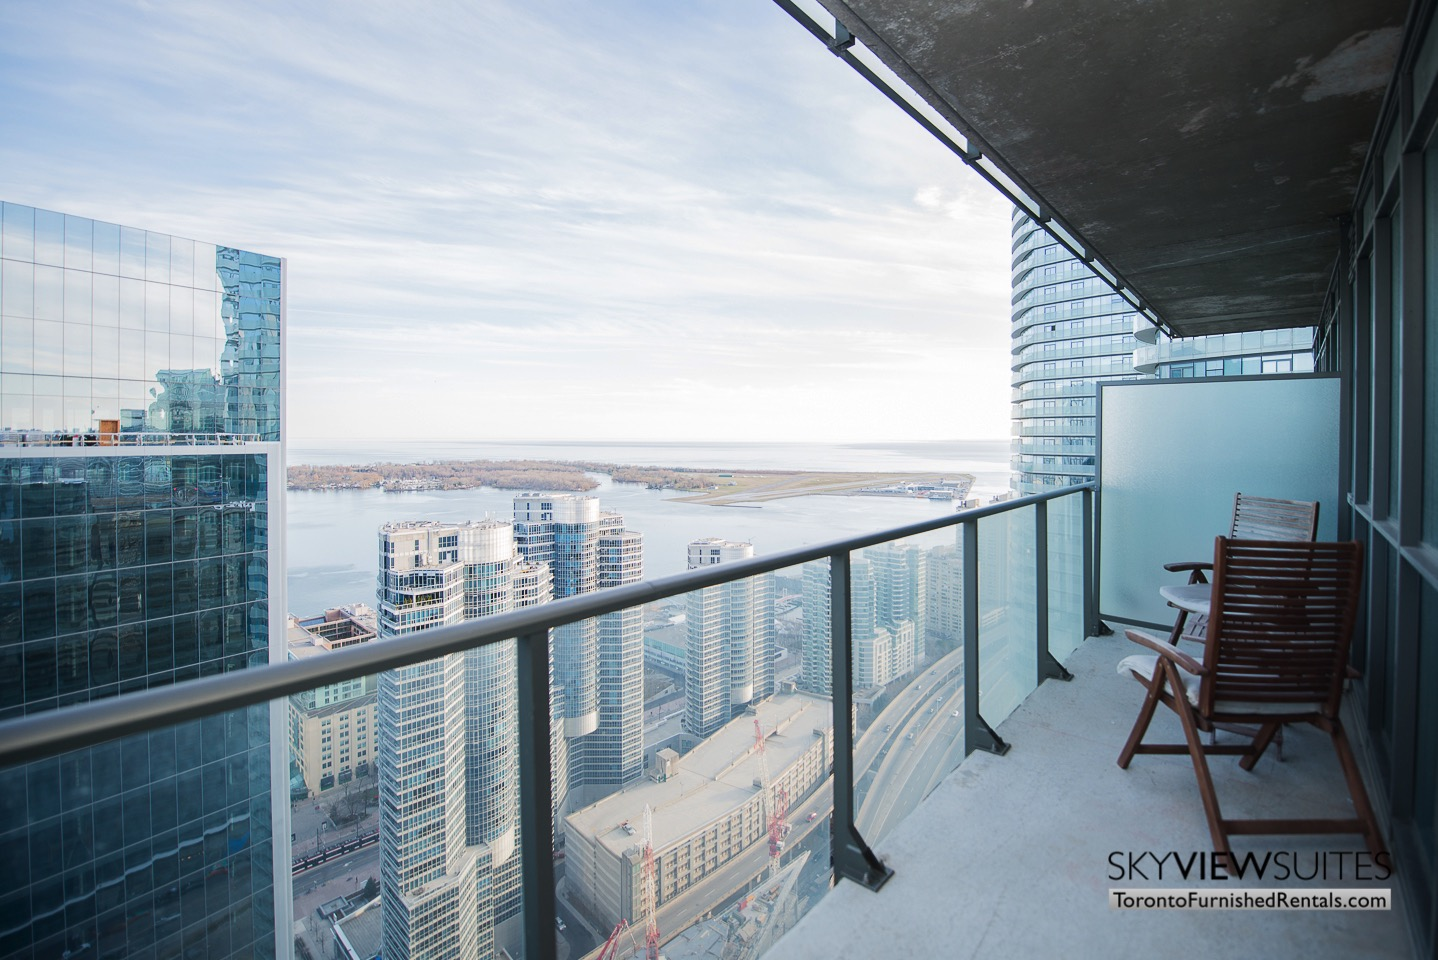 MLS furnished condo toronto balcony